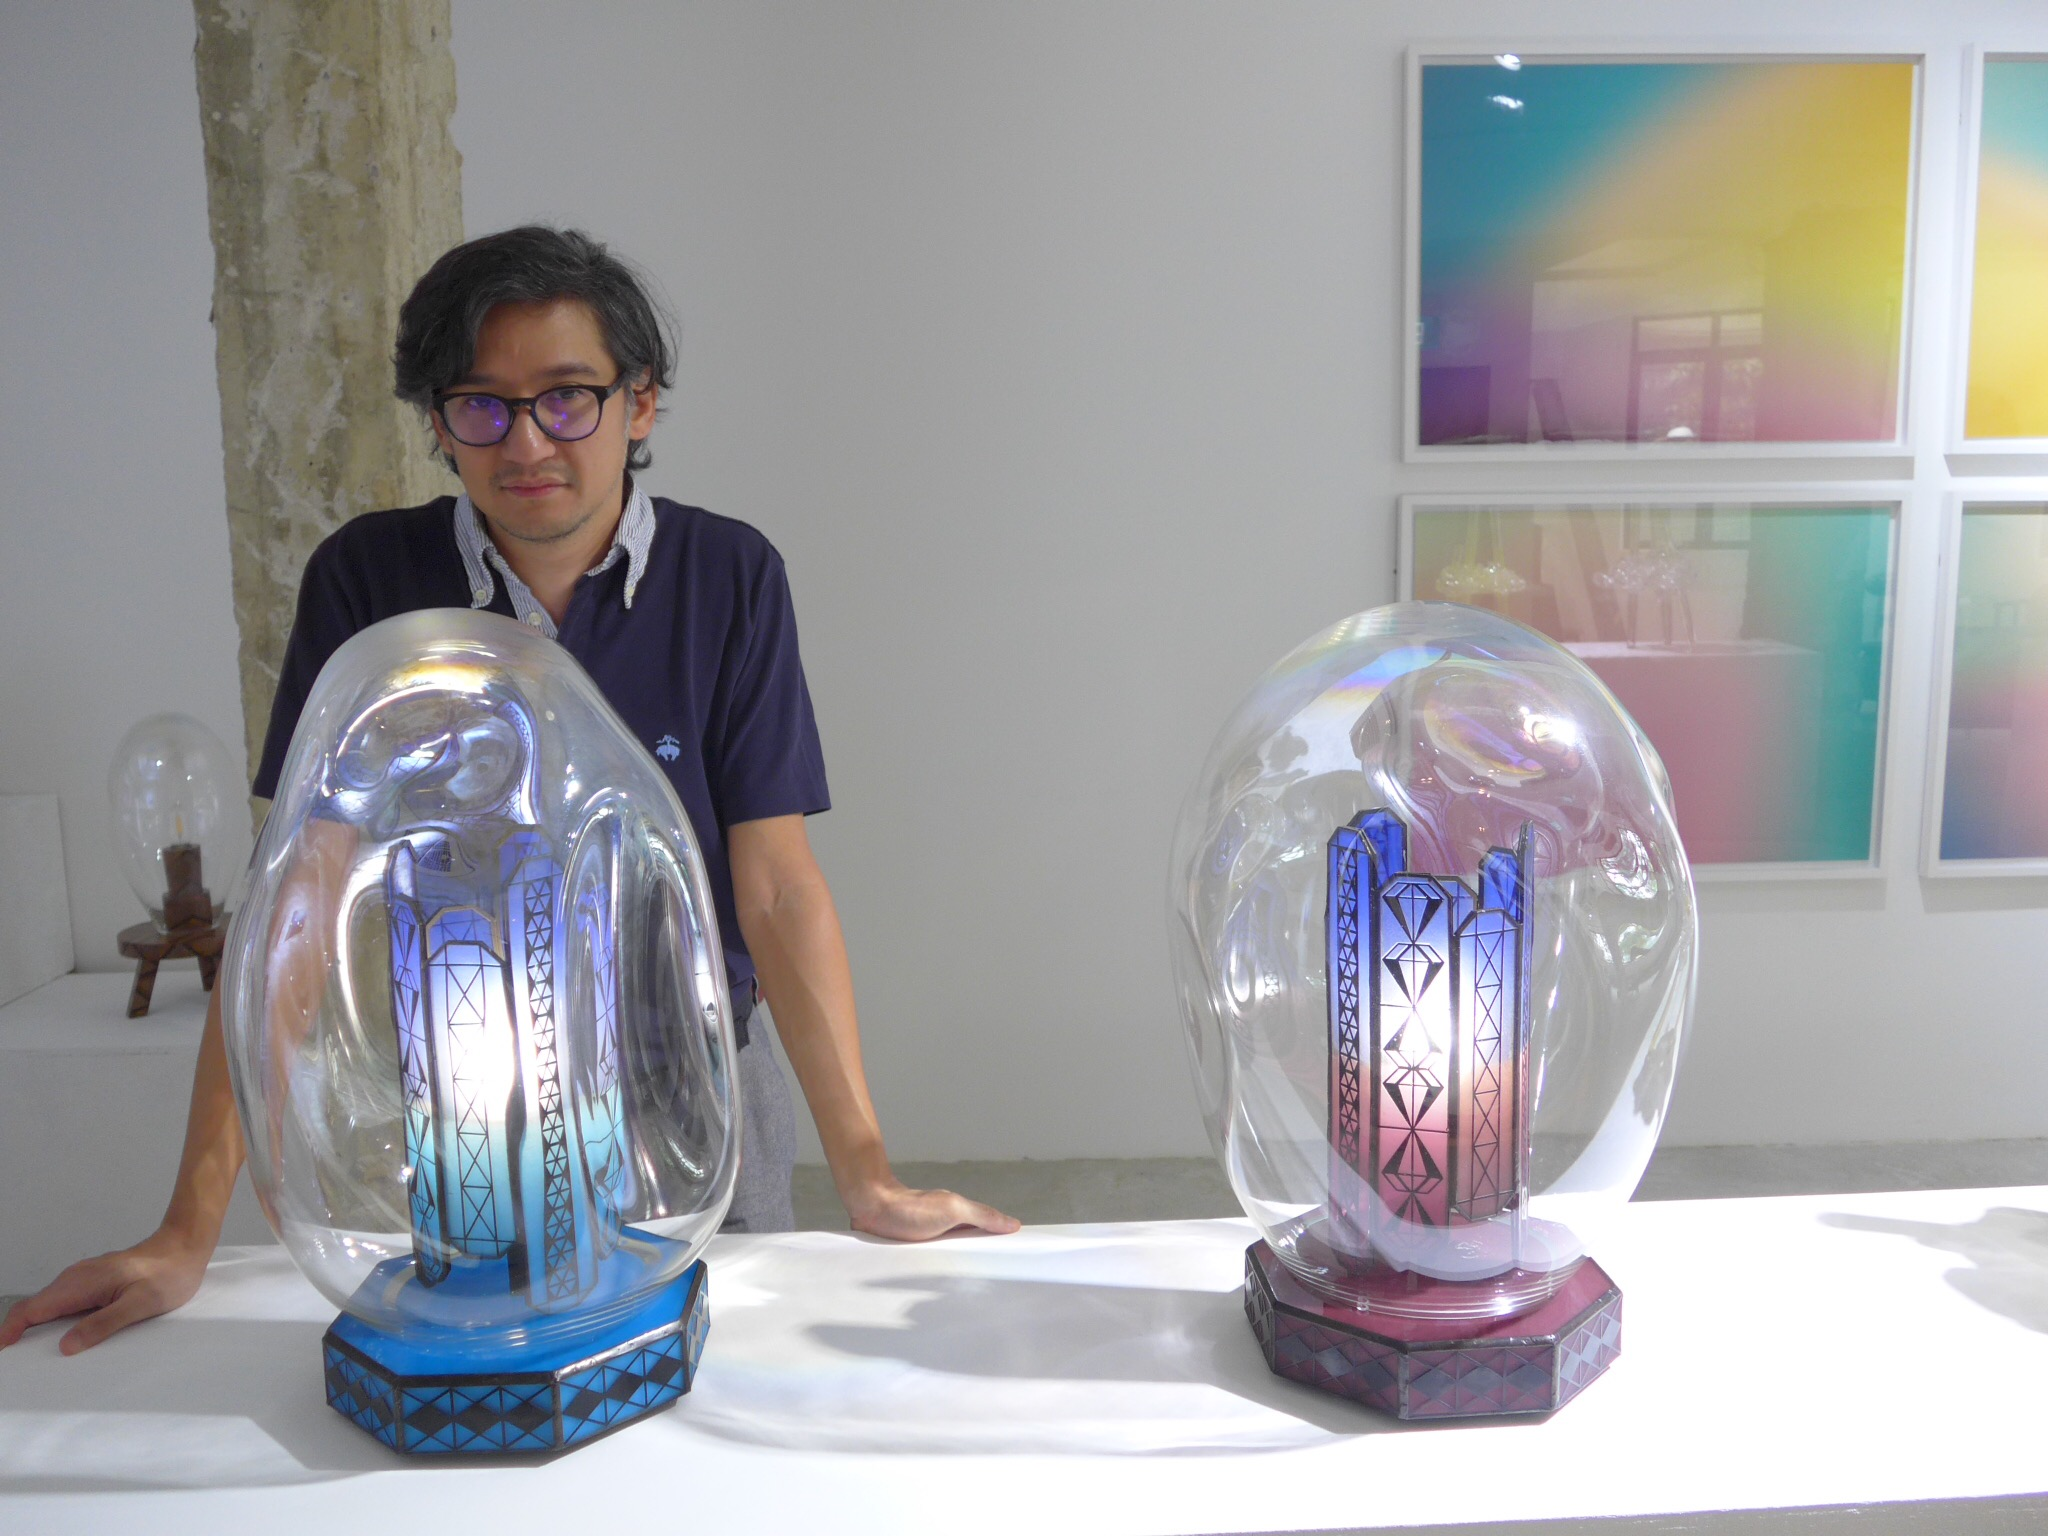 """From the Spektacularis exhibition, """"Studio Glass: Method in the Madness""""."""